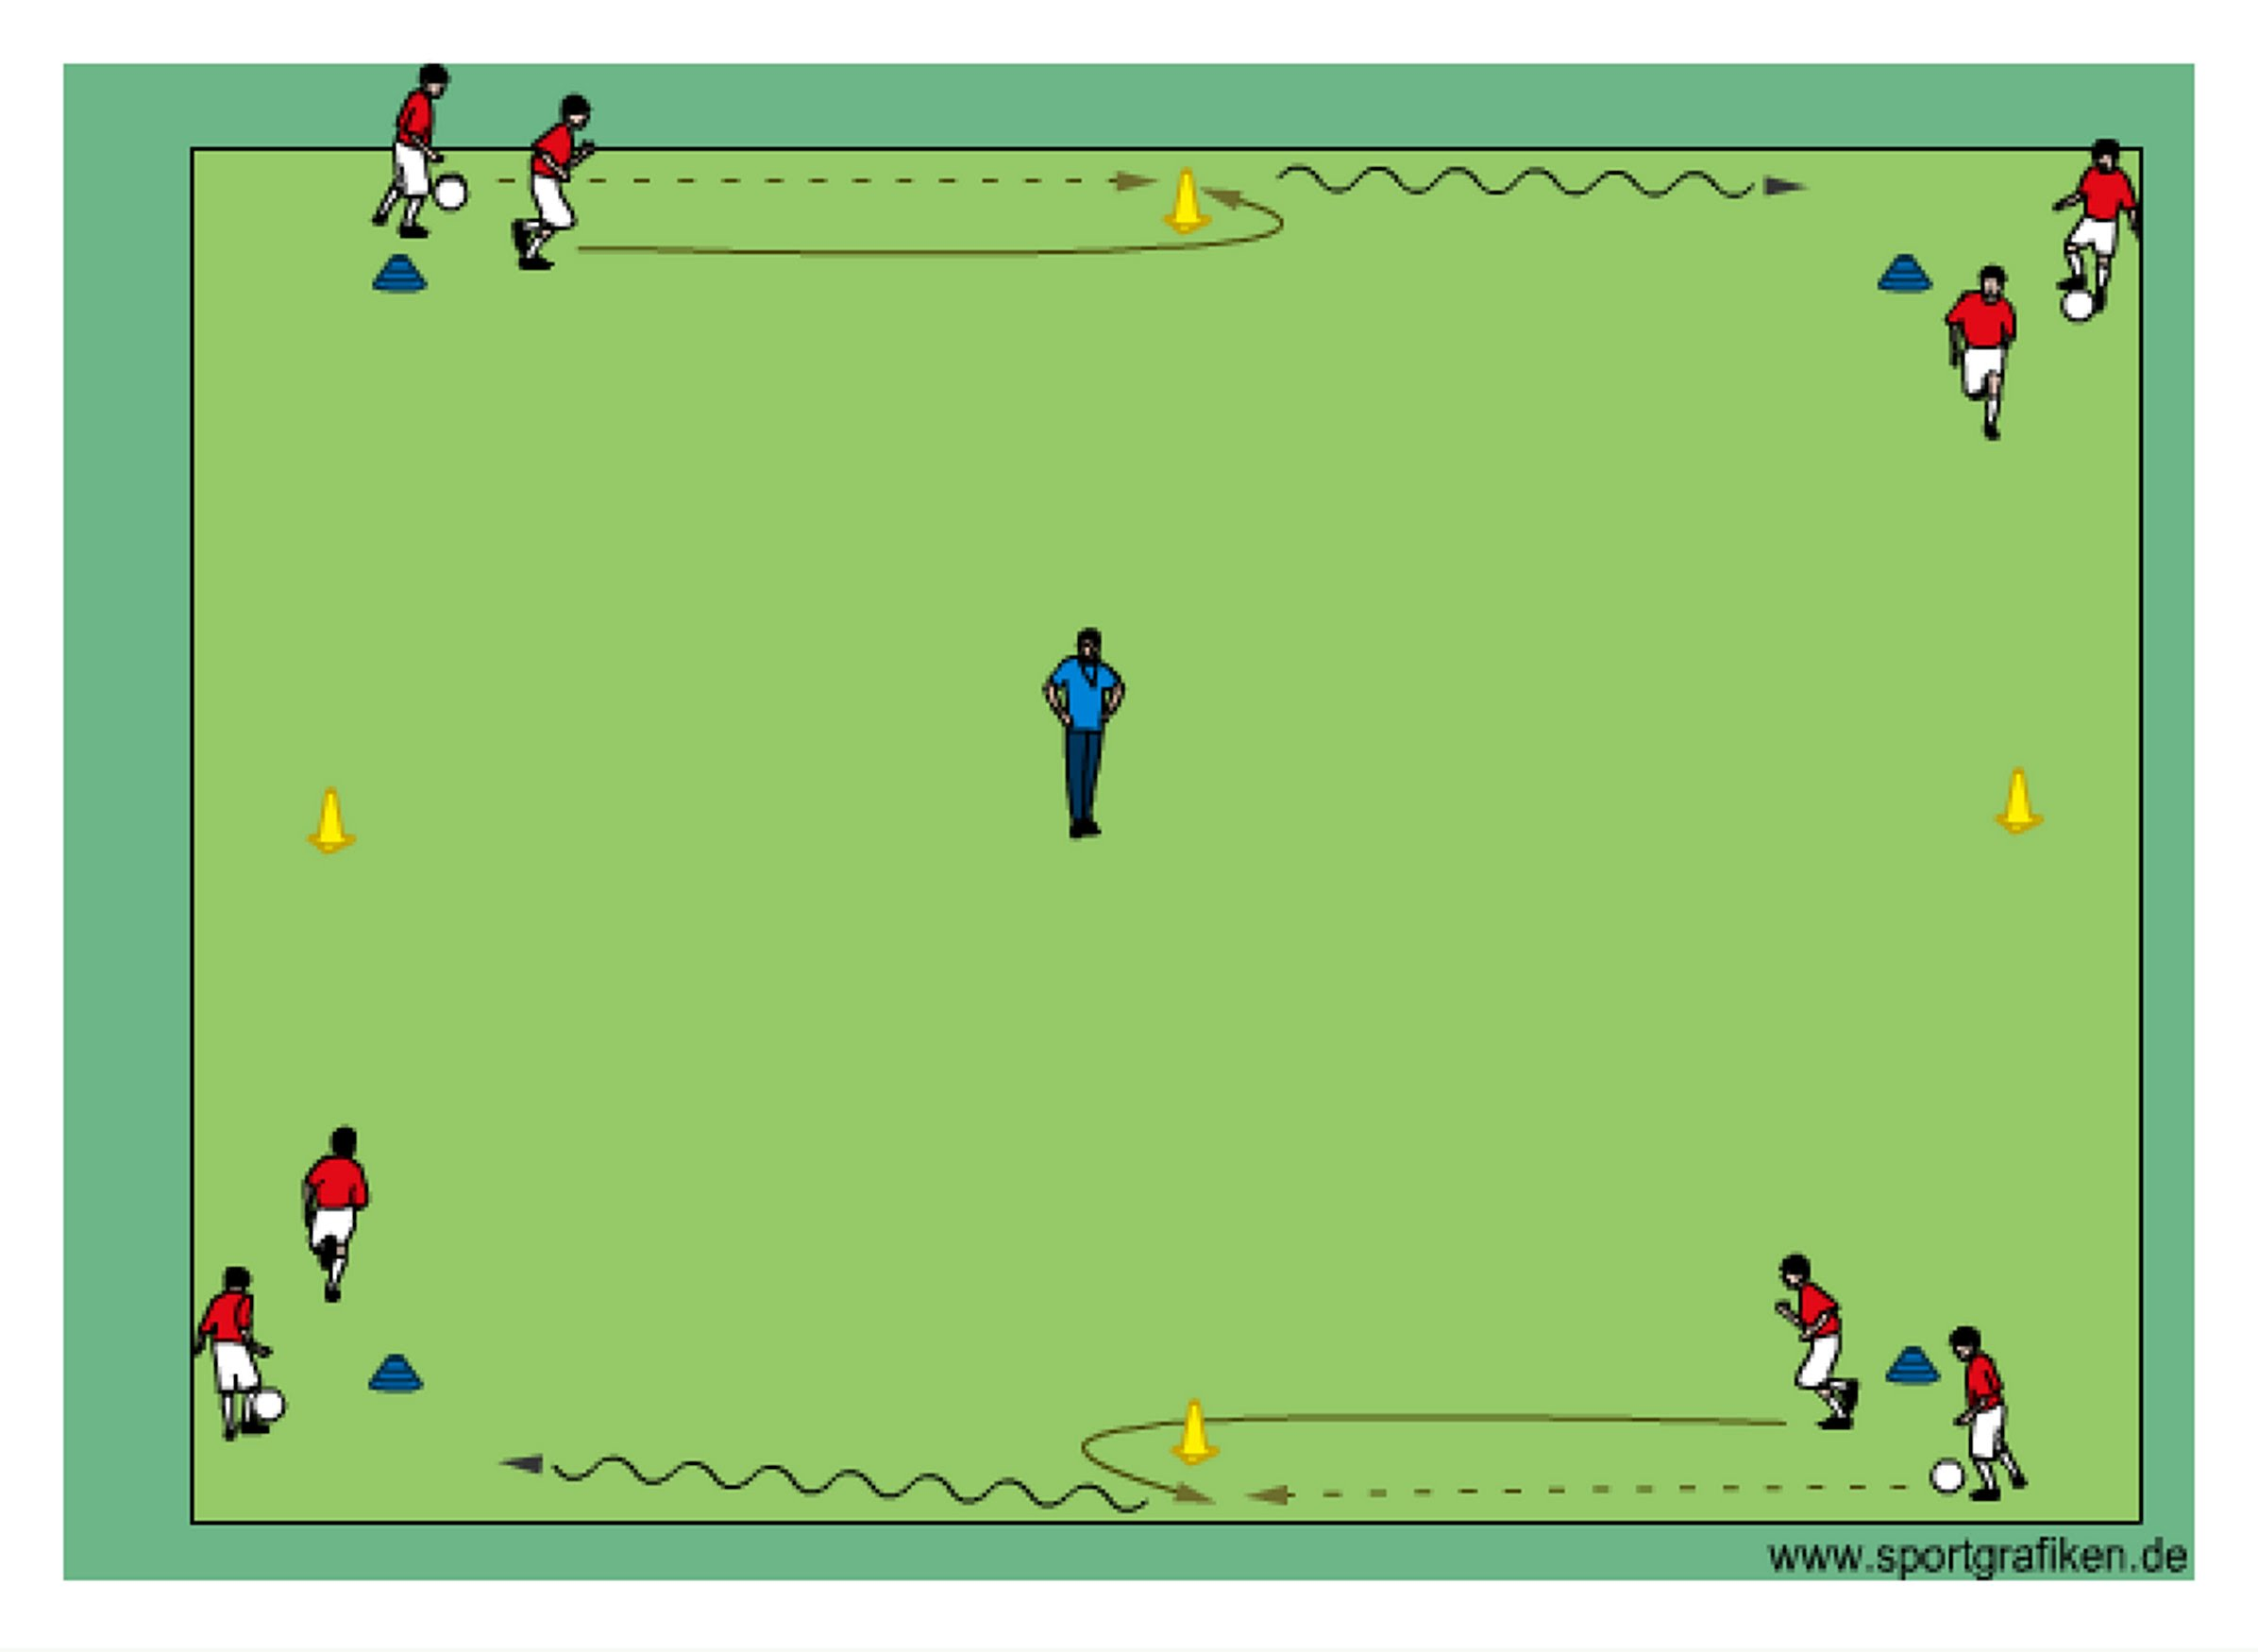 soccer trapping and dribbling Contents1 why dribble2 dribbling drills3 where do i find these drills4 basic dribbling drills5 mastering your footwork 6 advanced cone dribbling drills7 dribbling drills with stepovers and feints8 advanced soccer cone dribbling drills9 conclusion what is your favorite sport.